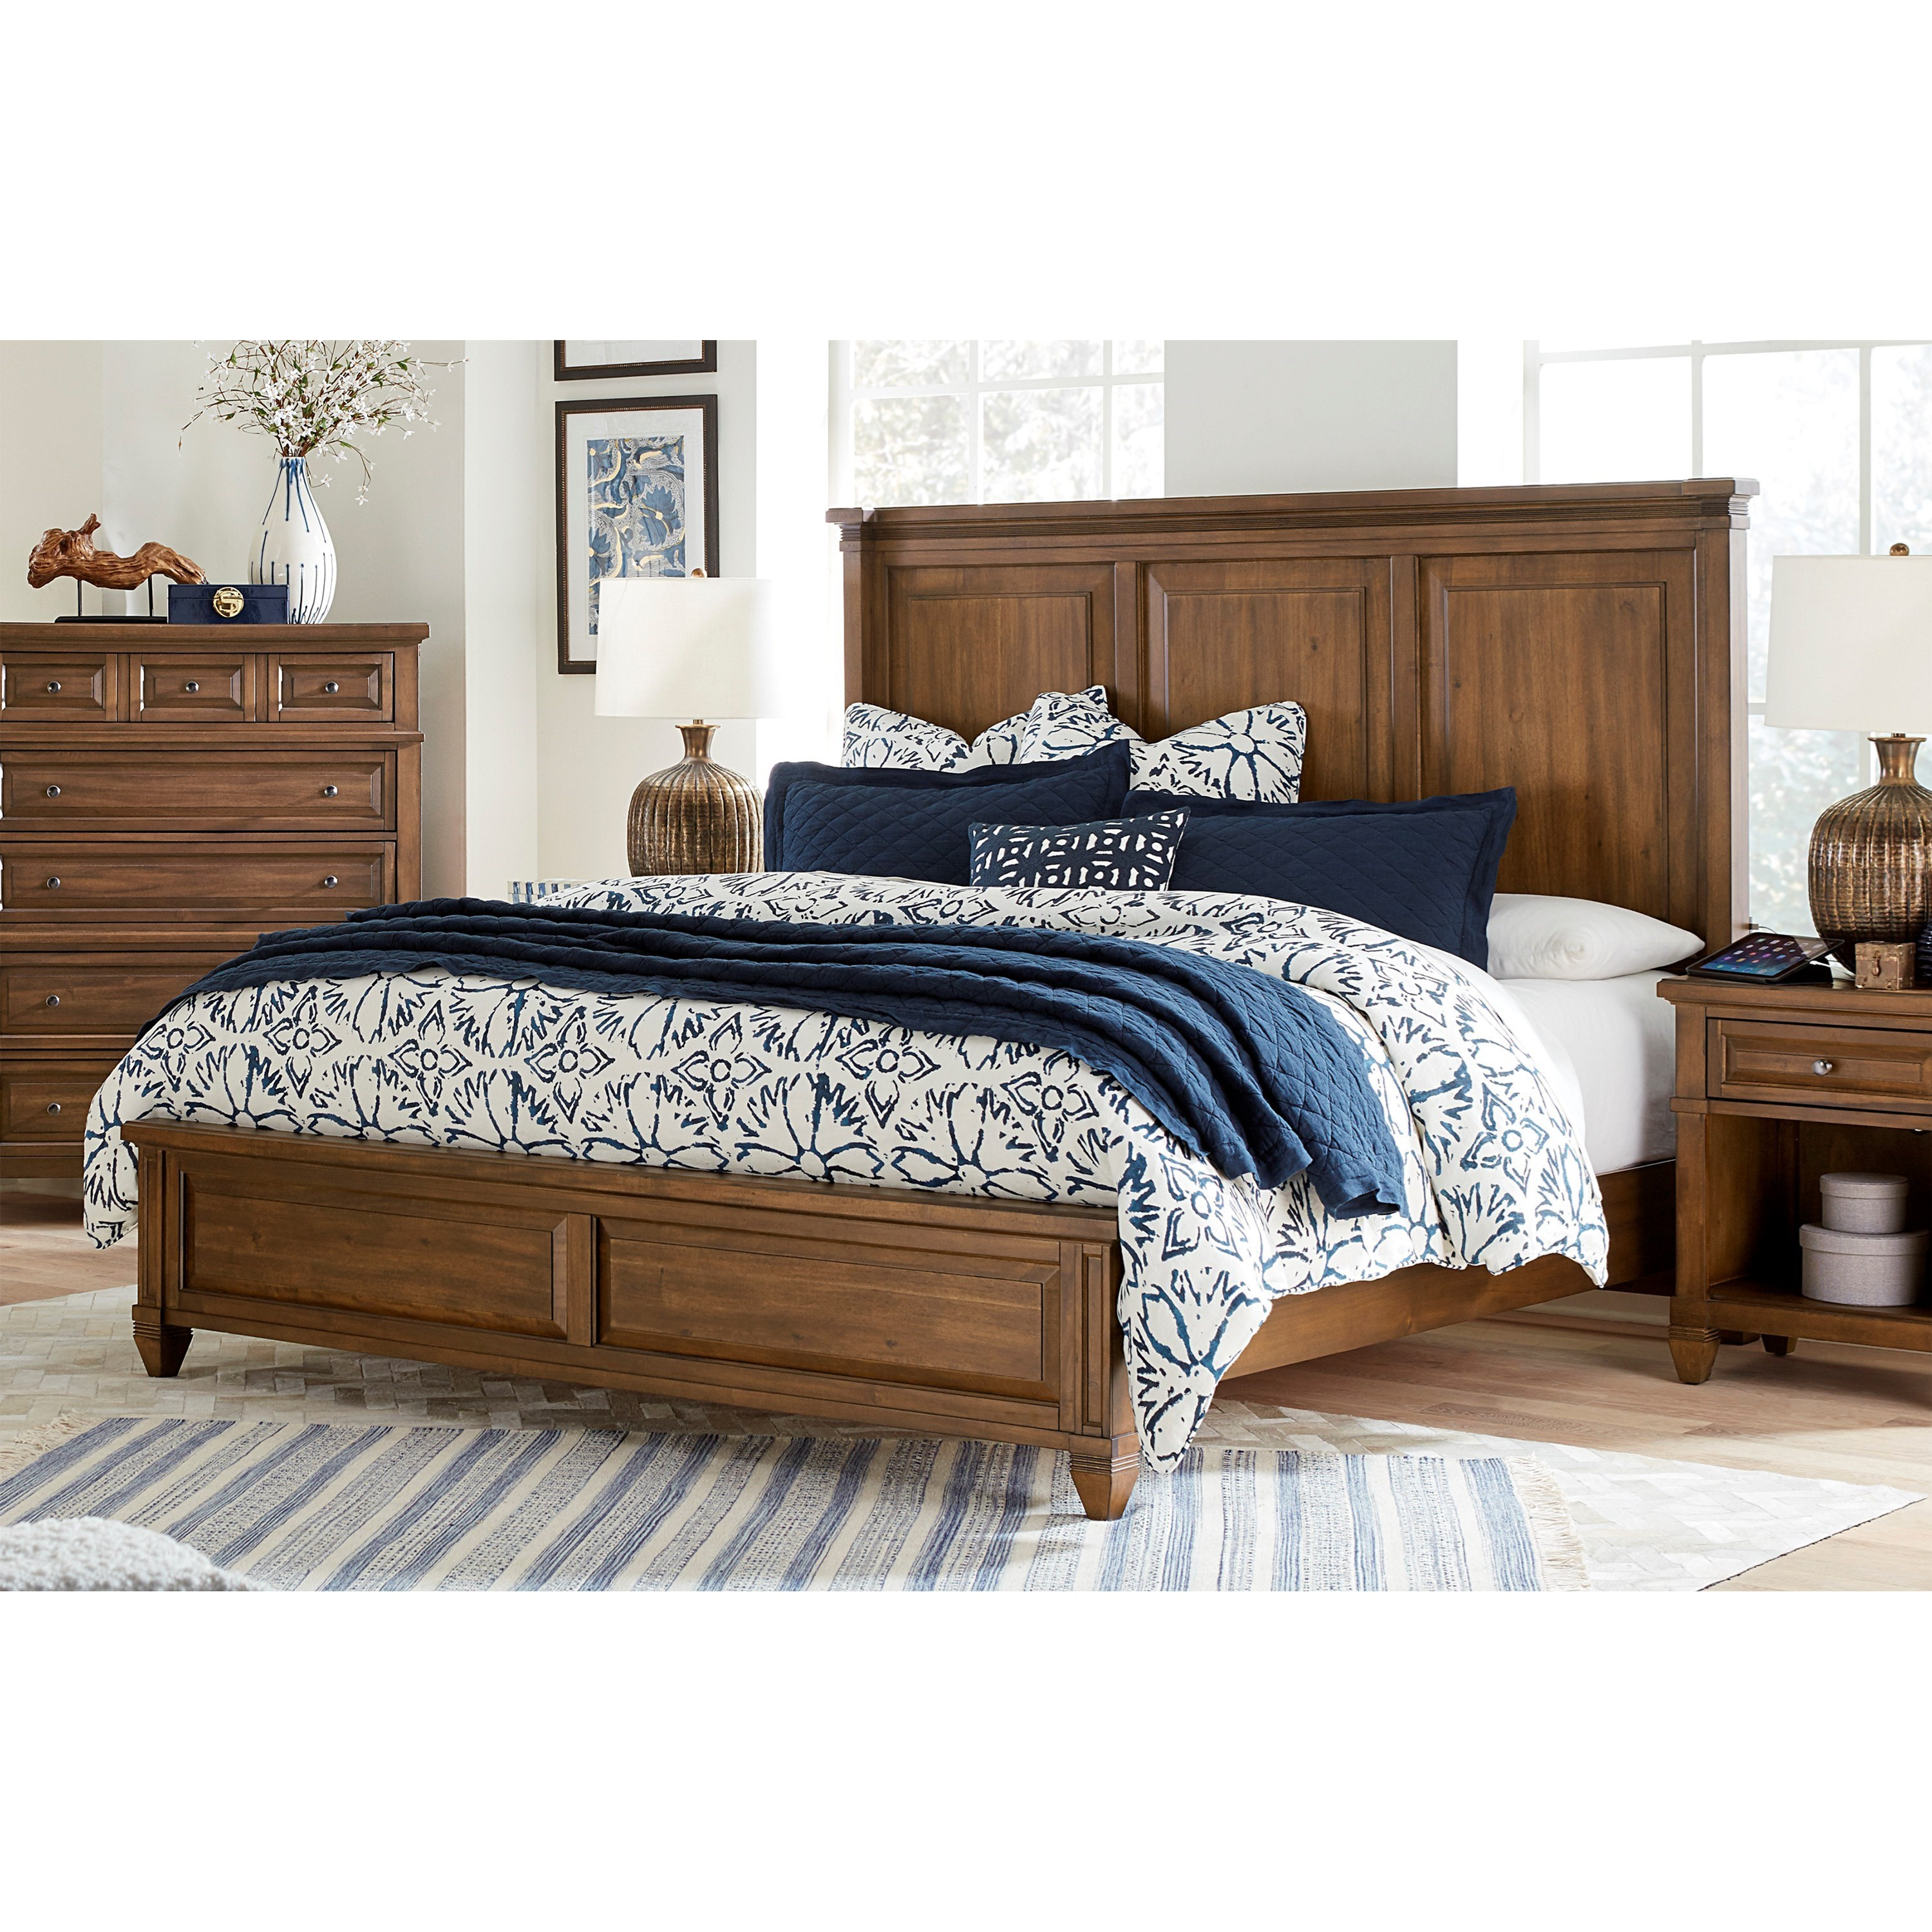 Thornton Queen Panel Bed by Aspenhome at Stoney Creek Furniture